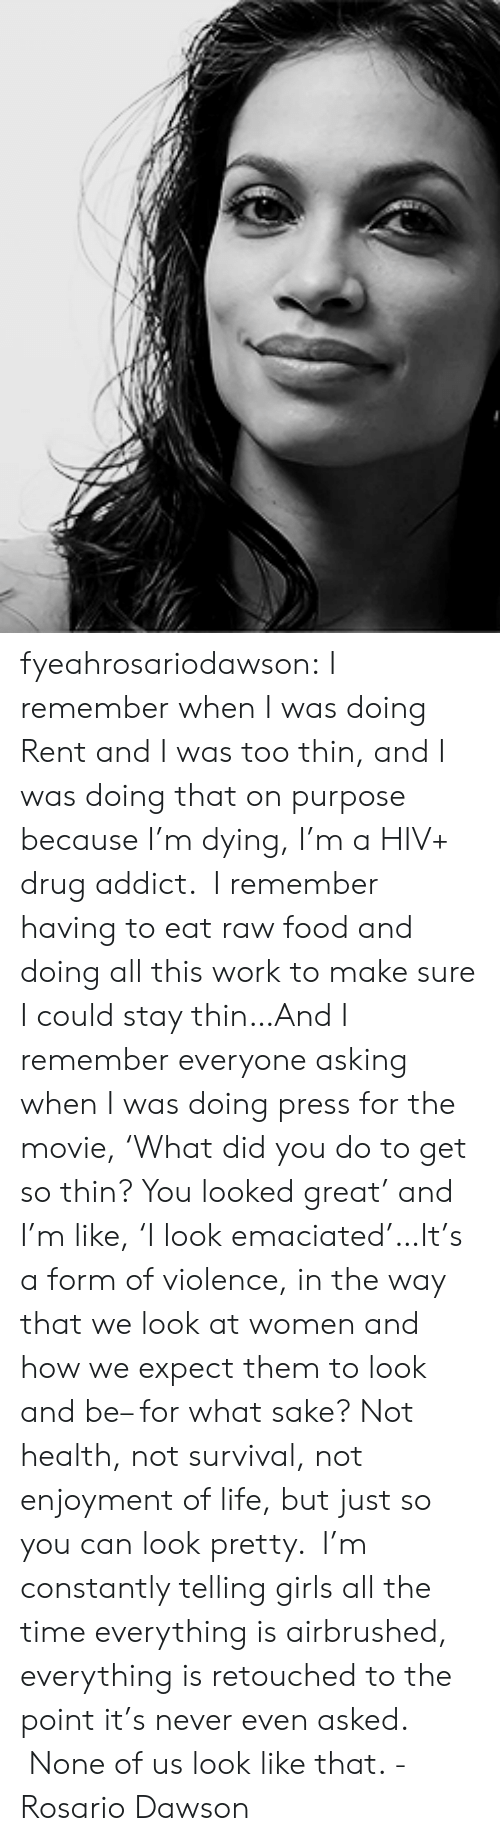 Rosario: fyeahrosariodawson:  I remember when I was doing Rent and I was too thin, and I was doing that on purpose because I'm dying, I'm a HIV+ drug addict.  I remember having to eat raw food and doing all this work to make sure I could stay thin…And I remember everyone asking when I was doing press for the movie, 'What did you do to get so thin? You looked great' and I'm like, 'I look emaciated'…It's a form of violence, in the way that we look at women and how we expect them to look and be– for what sake? Not health, not survival, not enjoyment of life, but just so you can look pretty.  I'm constantly telling girls all the time everything is airbrushed, everything is retouched to the point it's never even asked.  None of us look like that. - Rosario Dawson